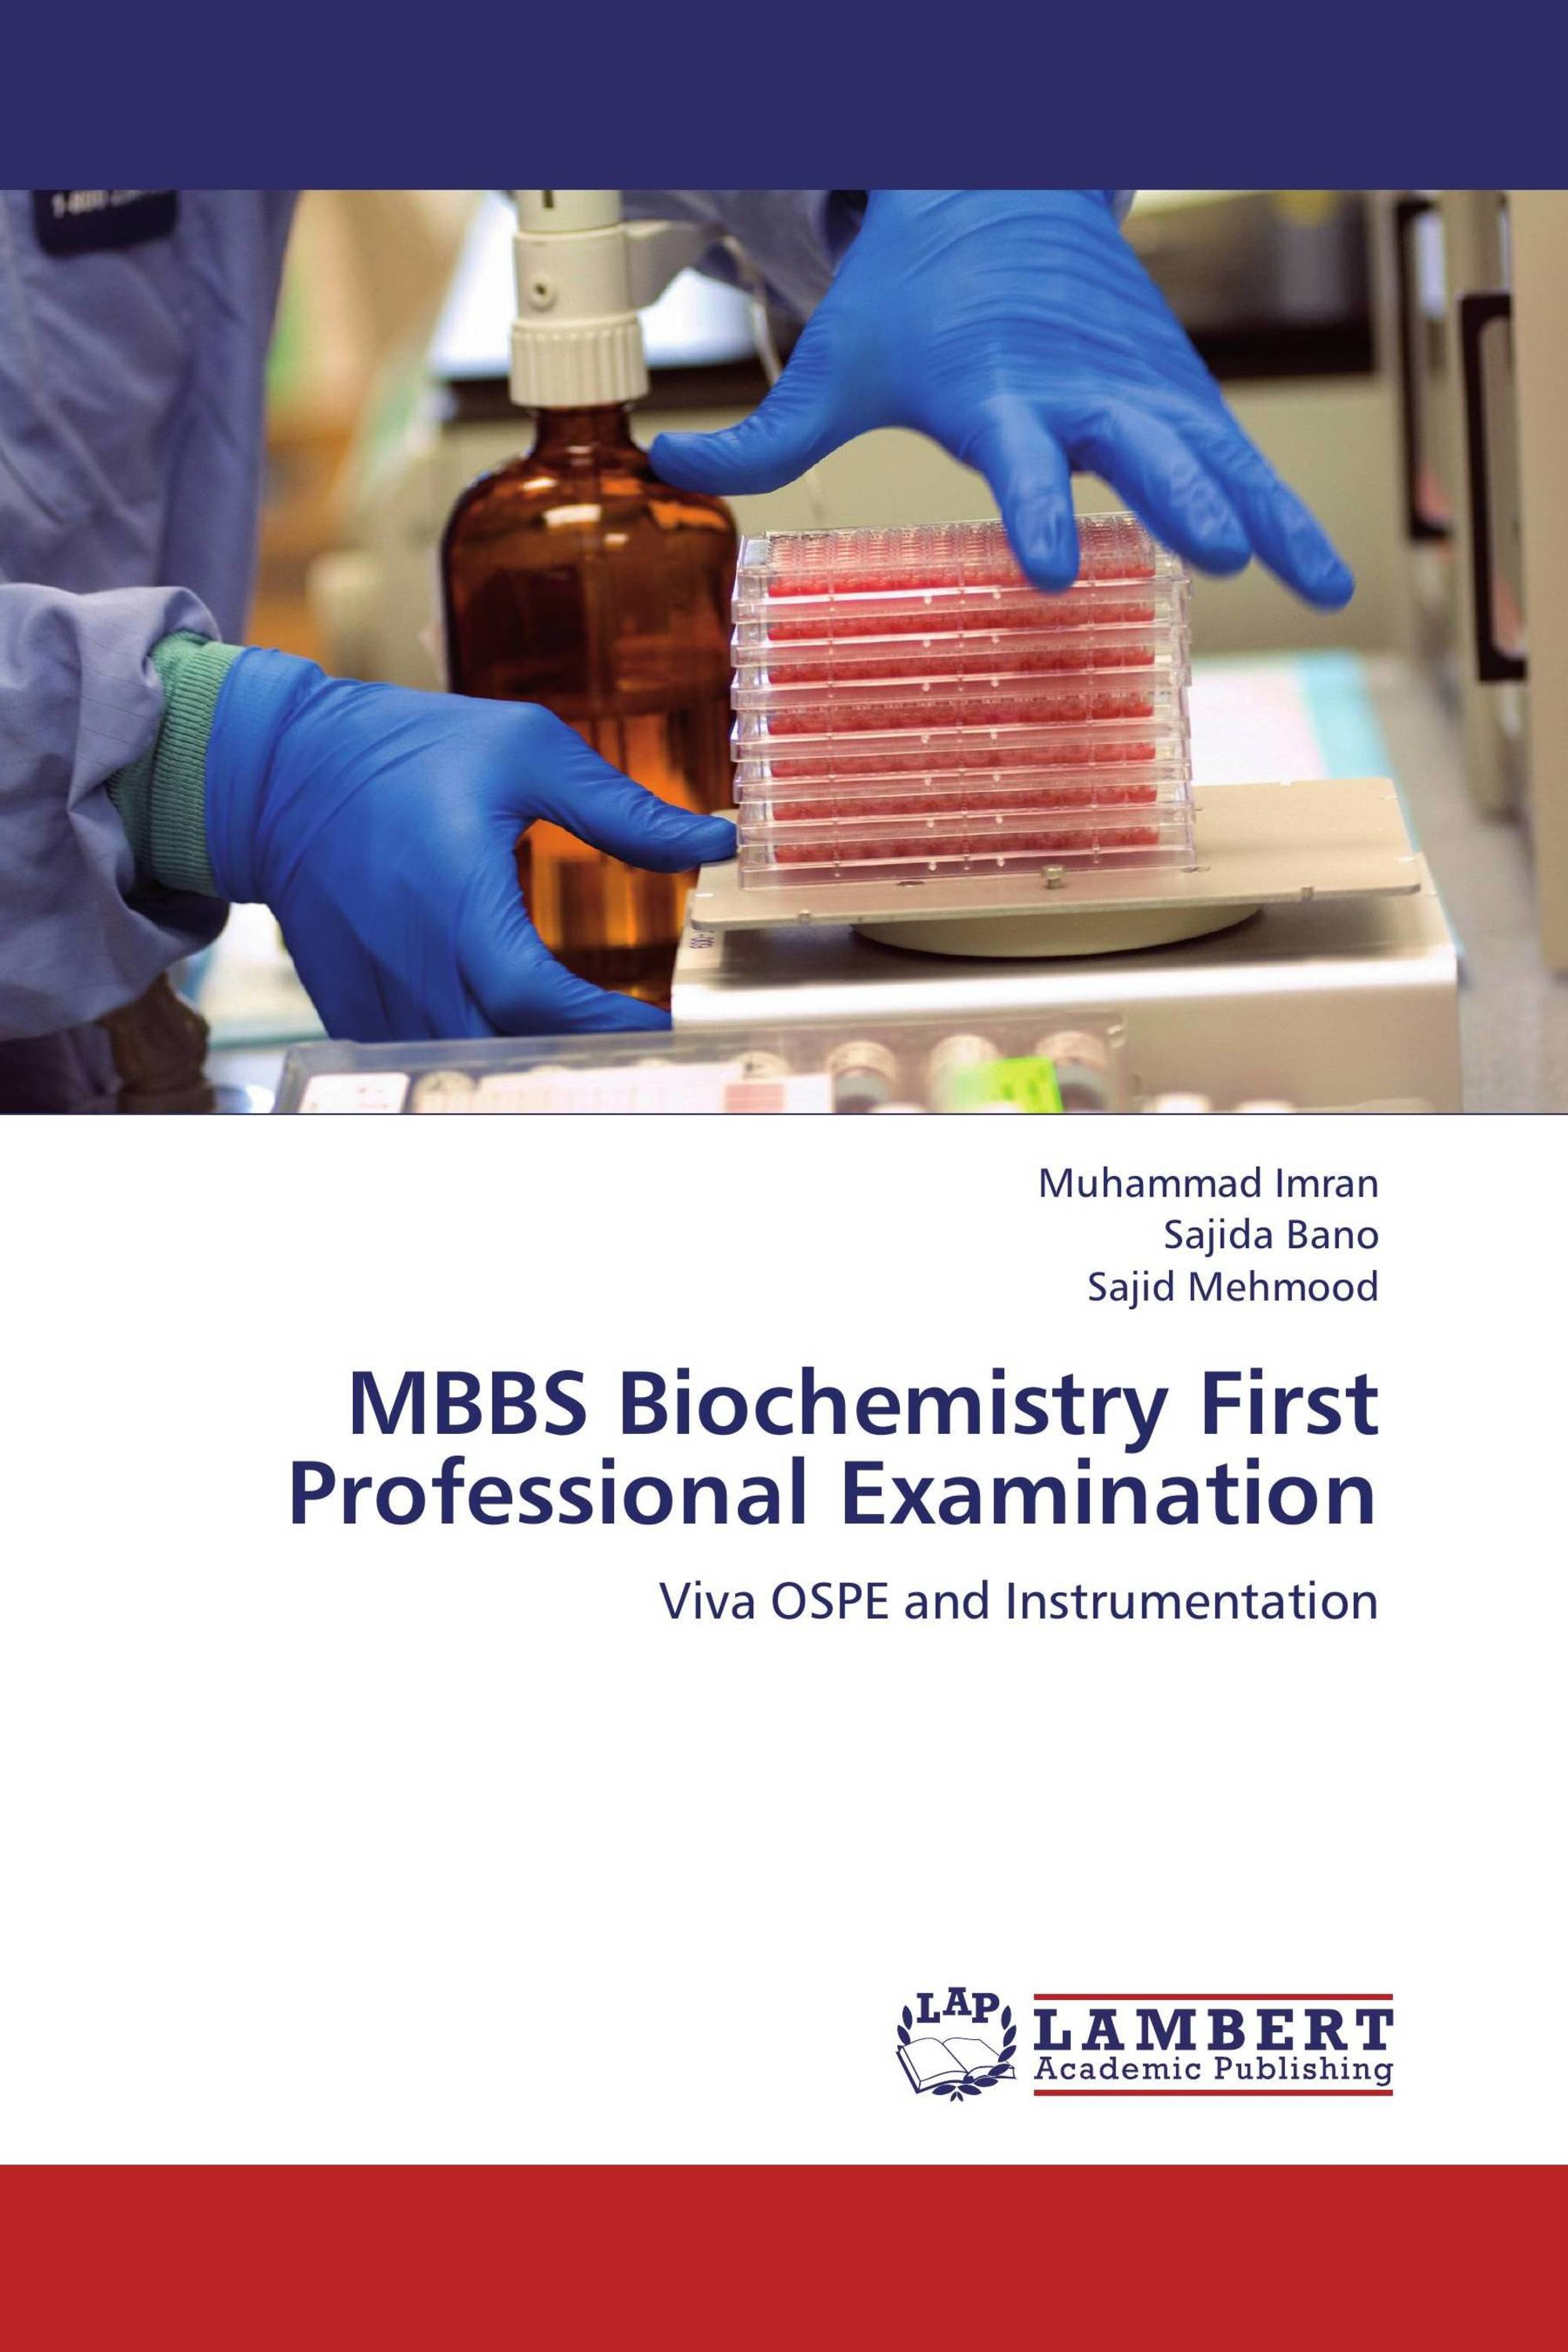 how to study biochemistry in mbbs